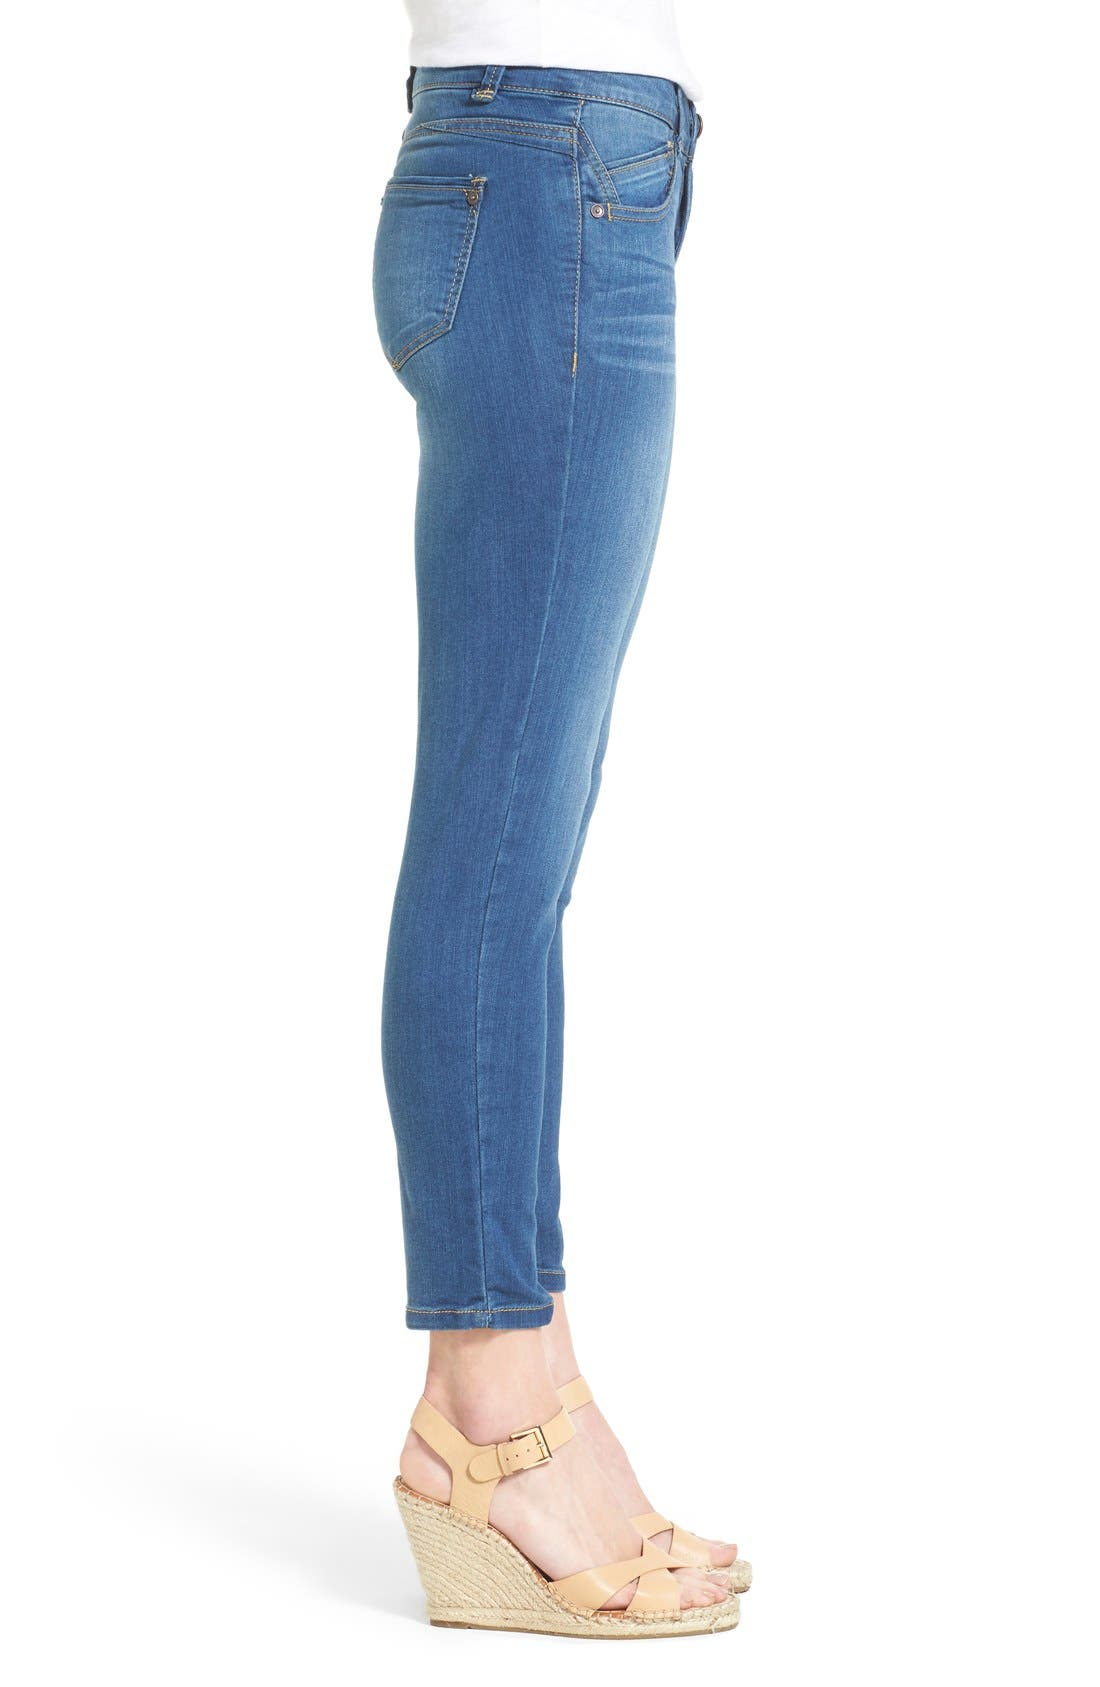 'Ab-solution' Stretch Ankle Skinny Jeans,                             Alternate thumbnail 3, color,                             Blue